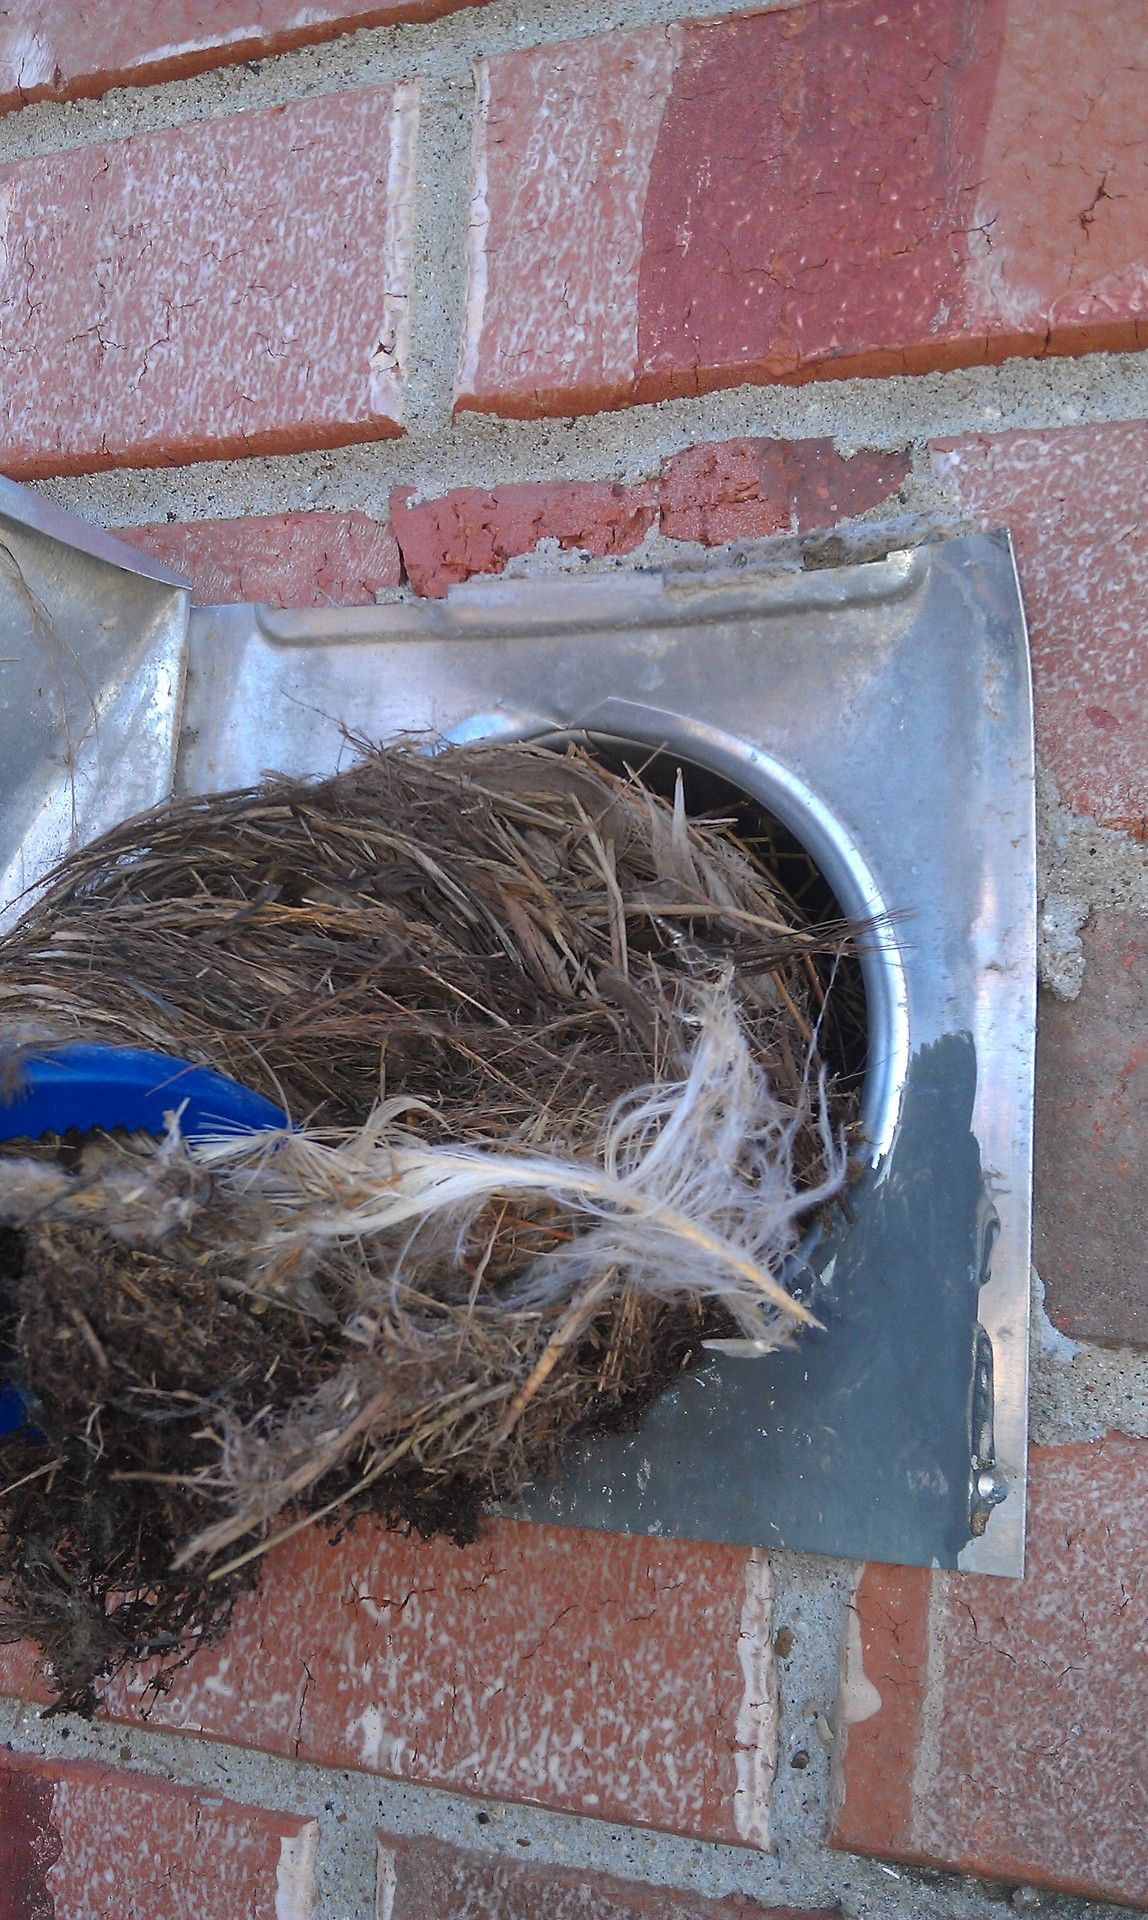 Birds build nests inside dryer vents and cause major